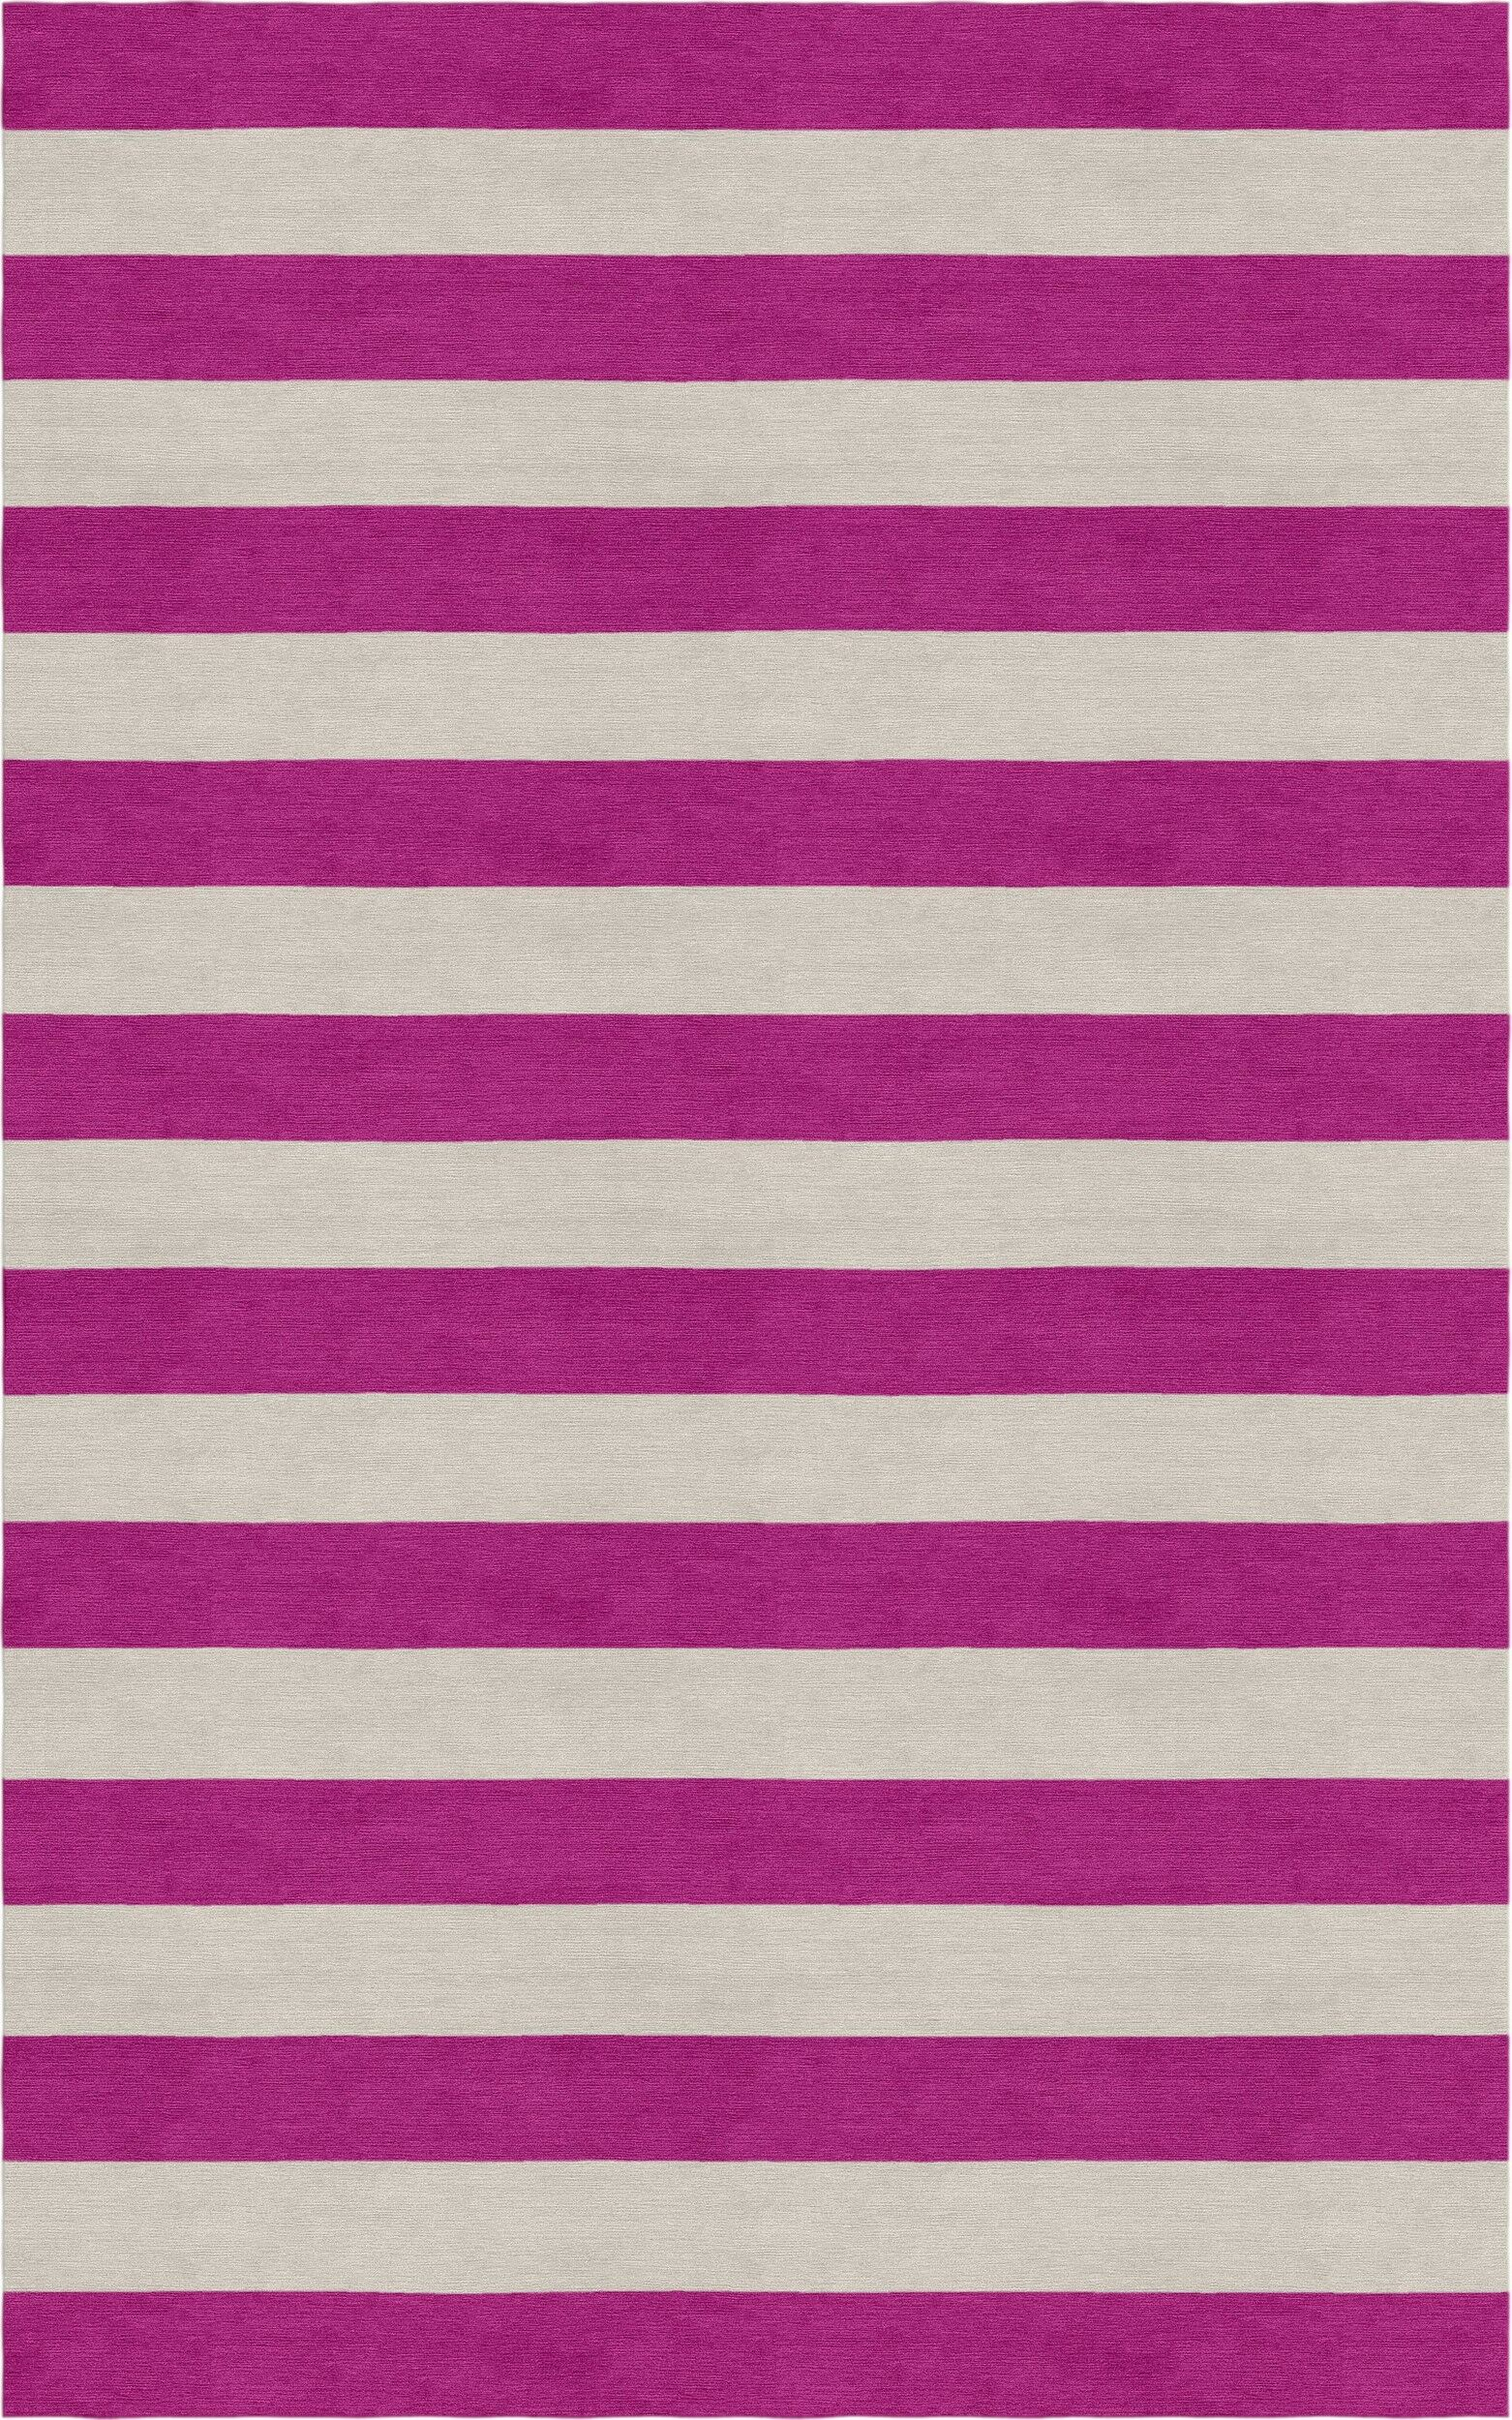 Crites Stripe Hand-Tufted Wool Silver/Magenta Area Rug Rug Size: Rectangle 8' x 10'